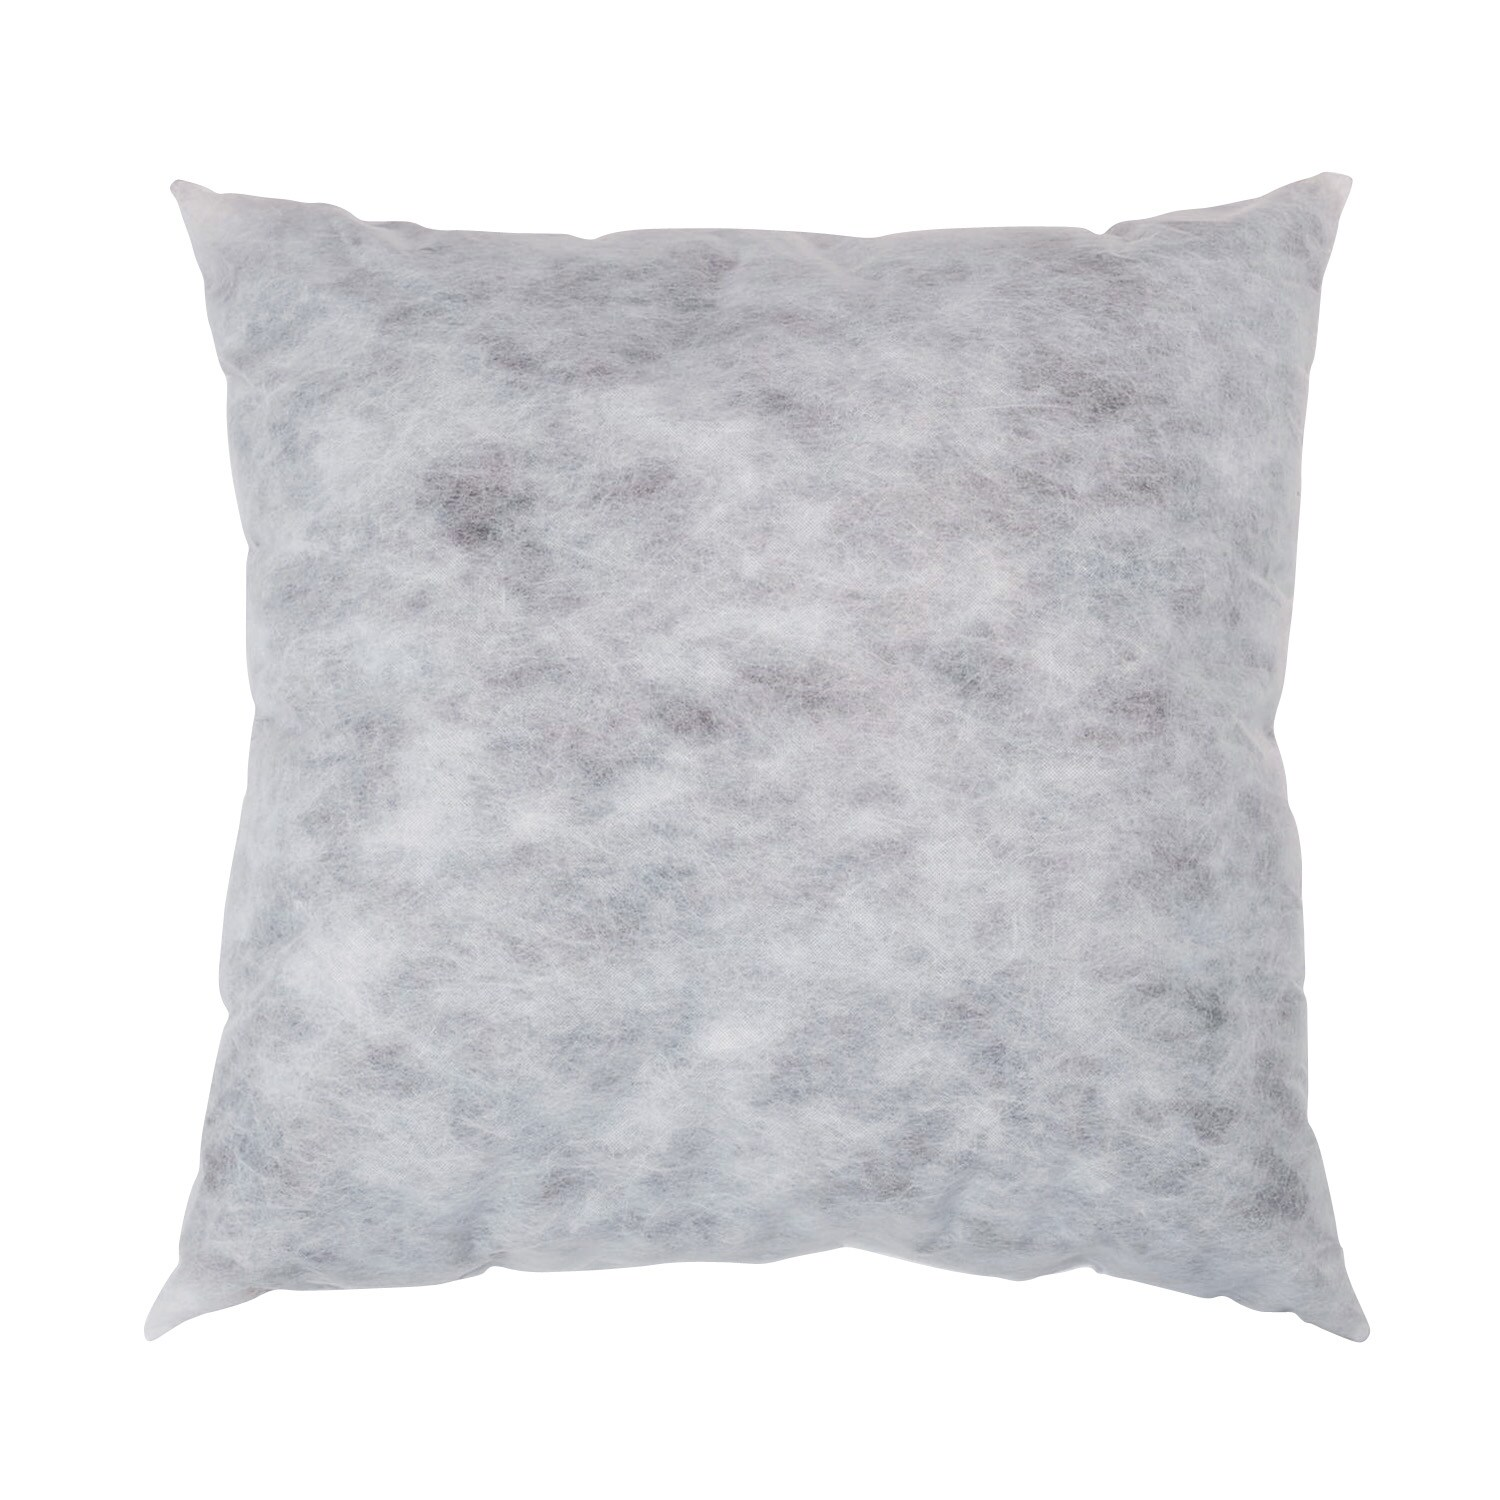 28-inch Non-Woven Polyester Pillow Insert